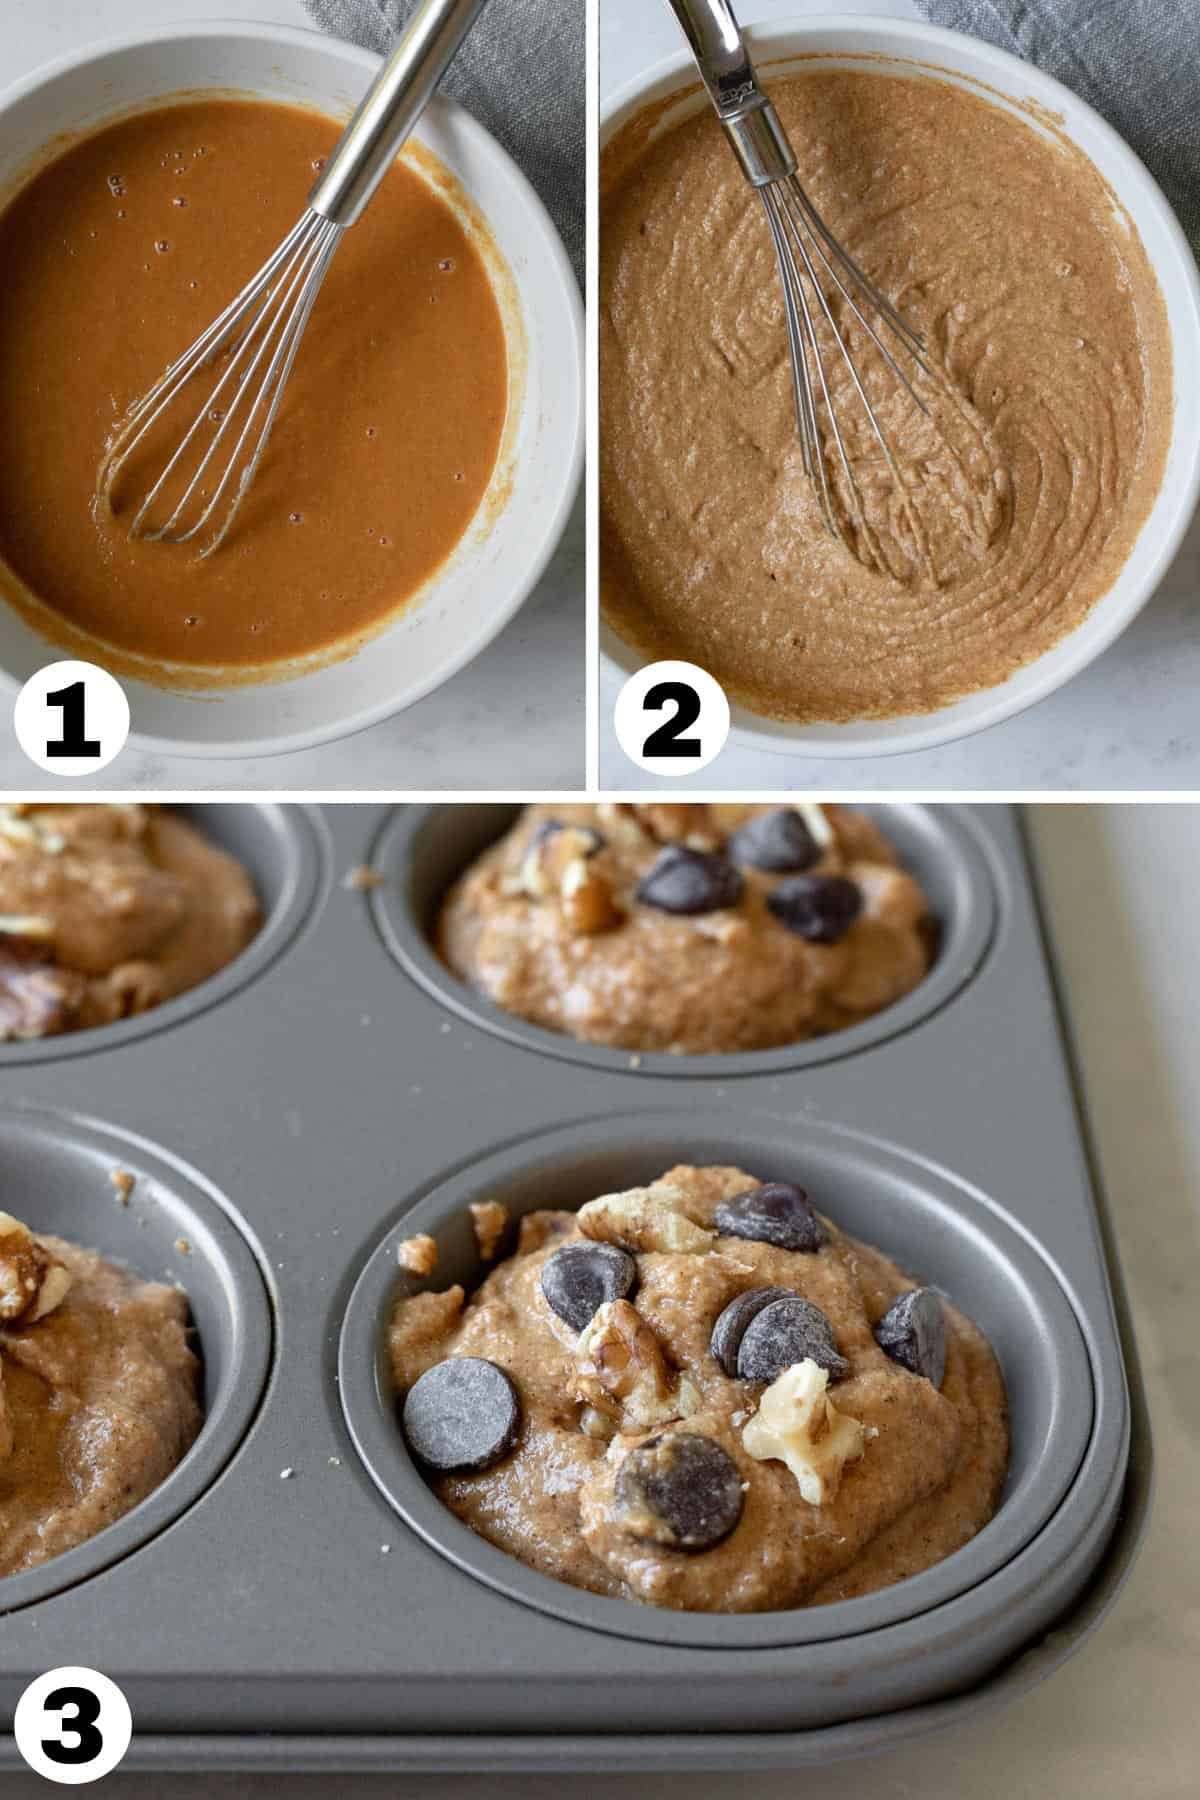 3-photo collage showing mixing muffin batter and in pan.